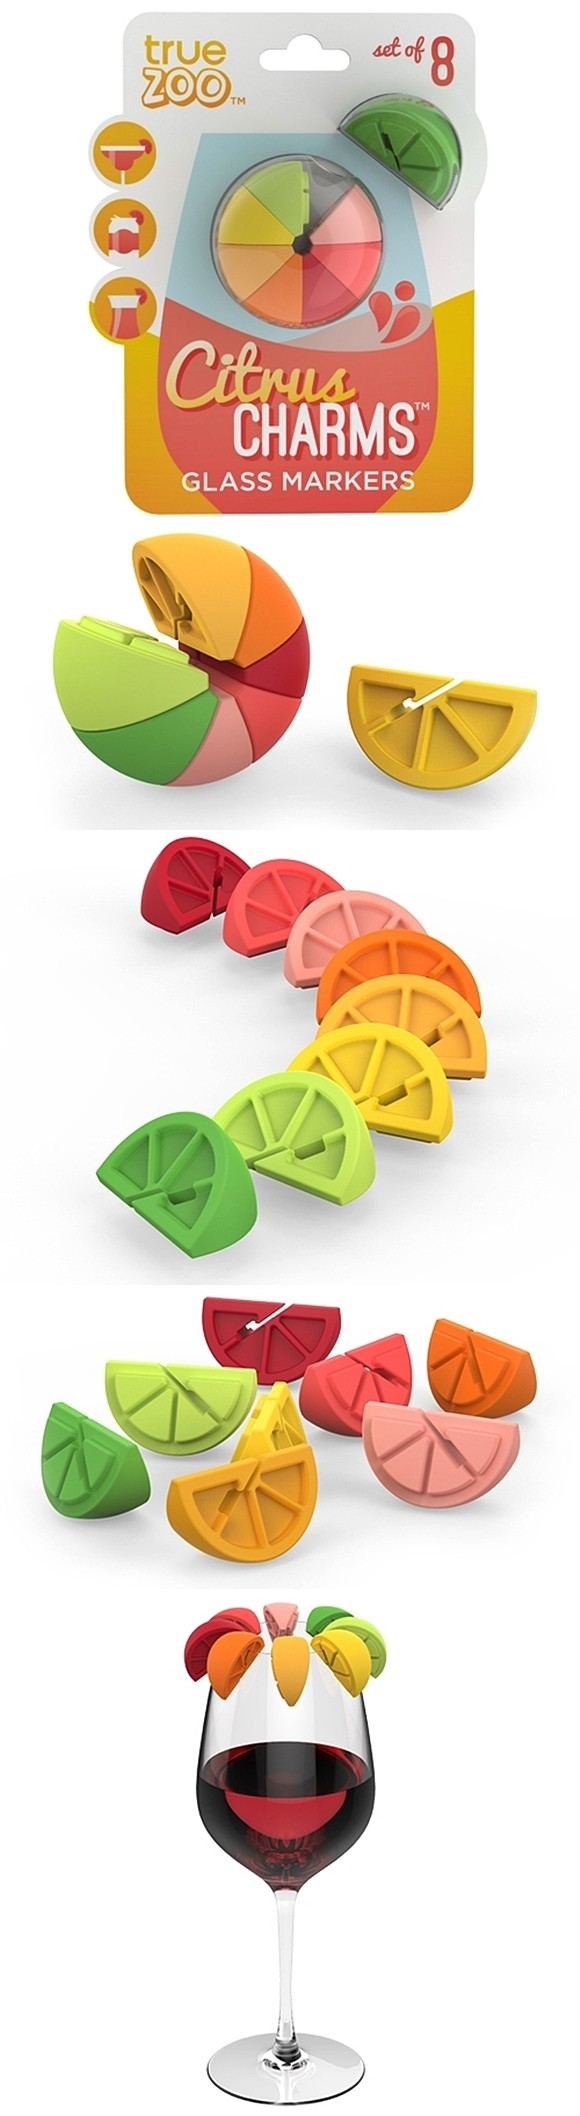 Citrus Charms Glass Markers by TrueZOO (Set of 8)